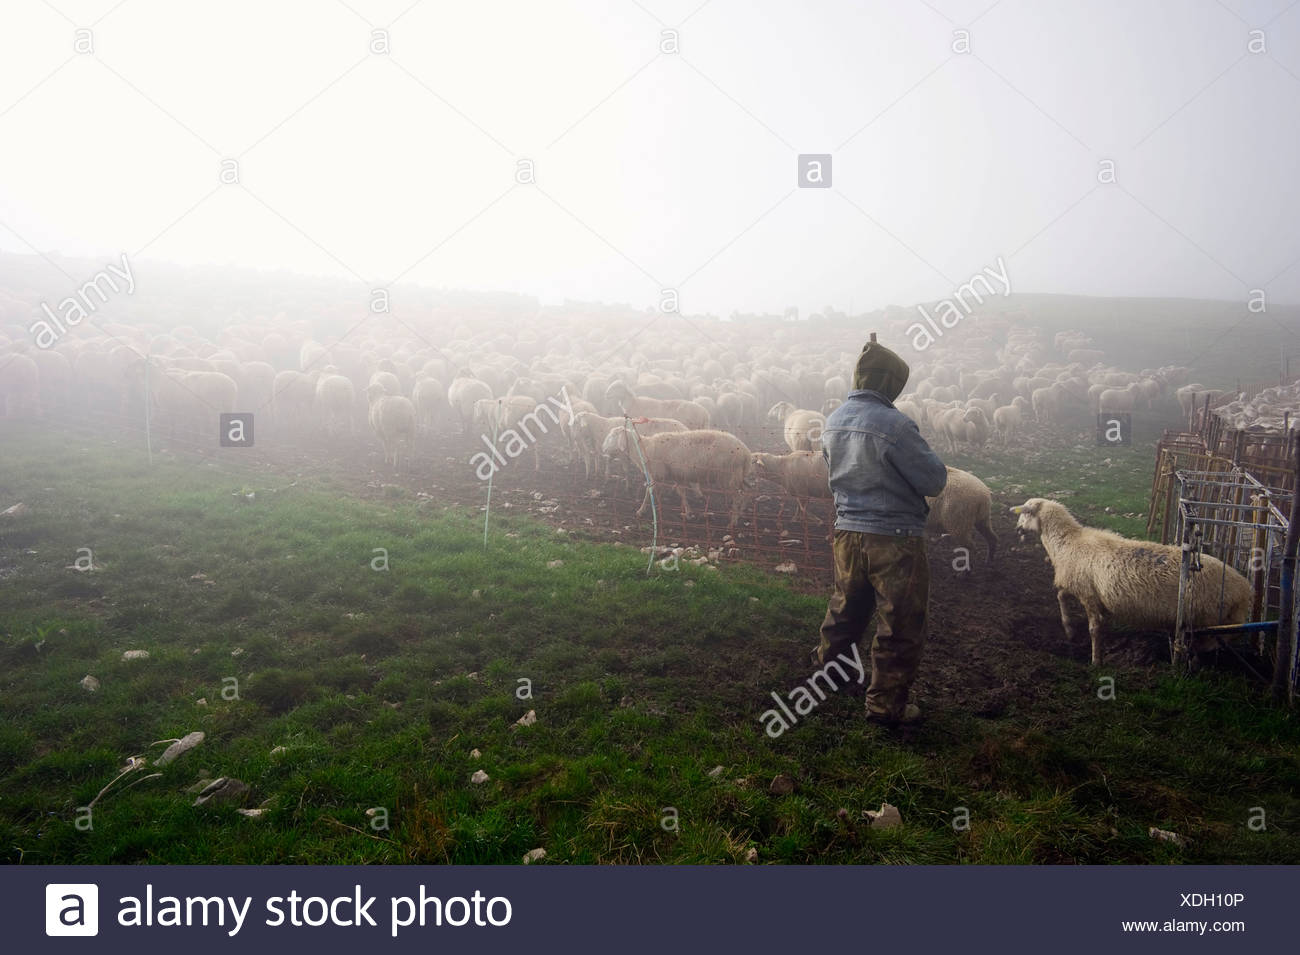 Flock of sheep in the early morning in the Monte Sibillini mountains, Apennines, Le Marche, Italy, Europe Stock Photo